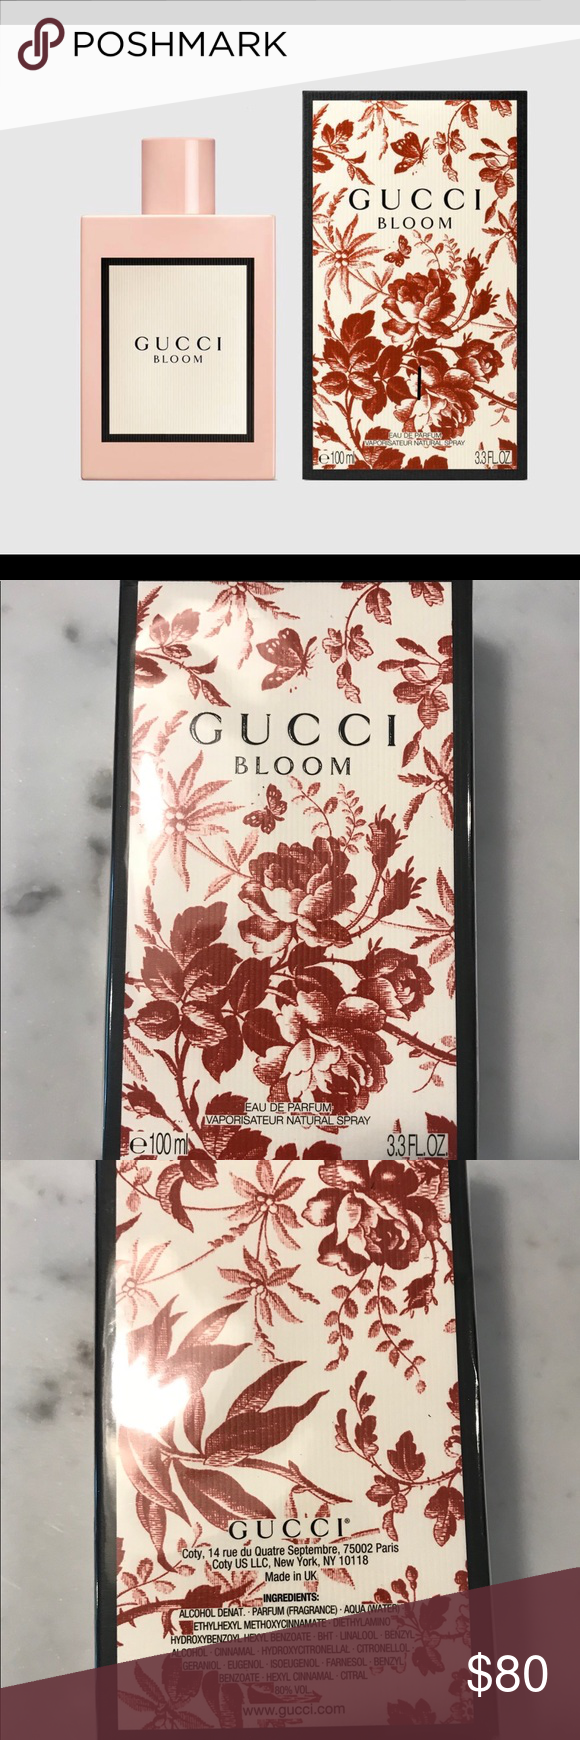 3 3 Oz 100ml Gucci Bloom Eau De Parfum New In Box Unique Flowers Gucci Gucci Makeup